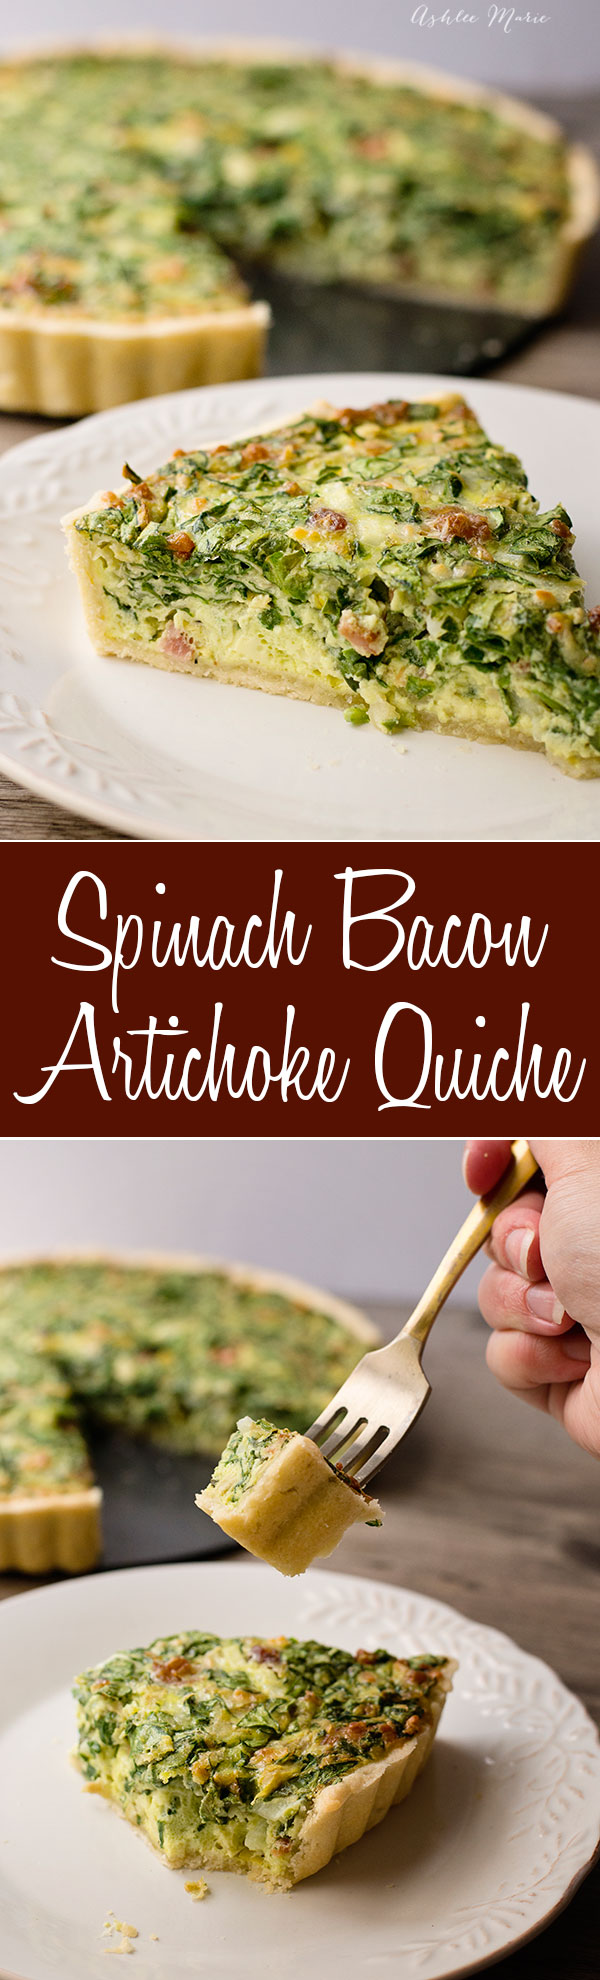 I love spinach, artichokes and bacon in any form, add a beautiful crust and eggs? perfection, my favorite quiche